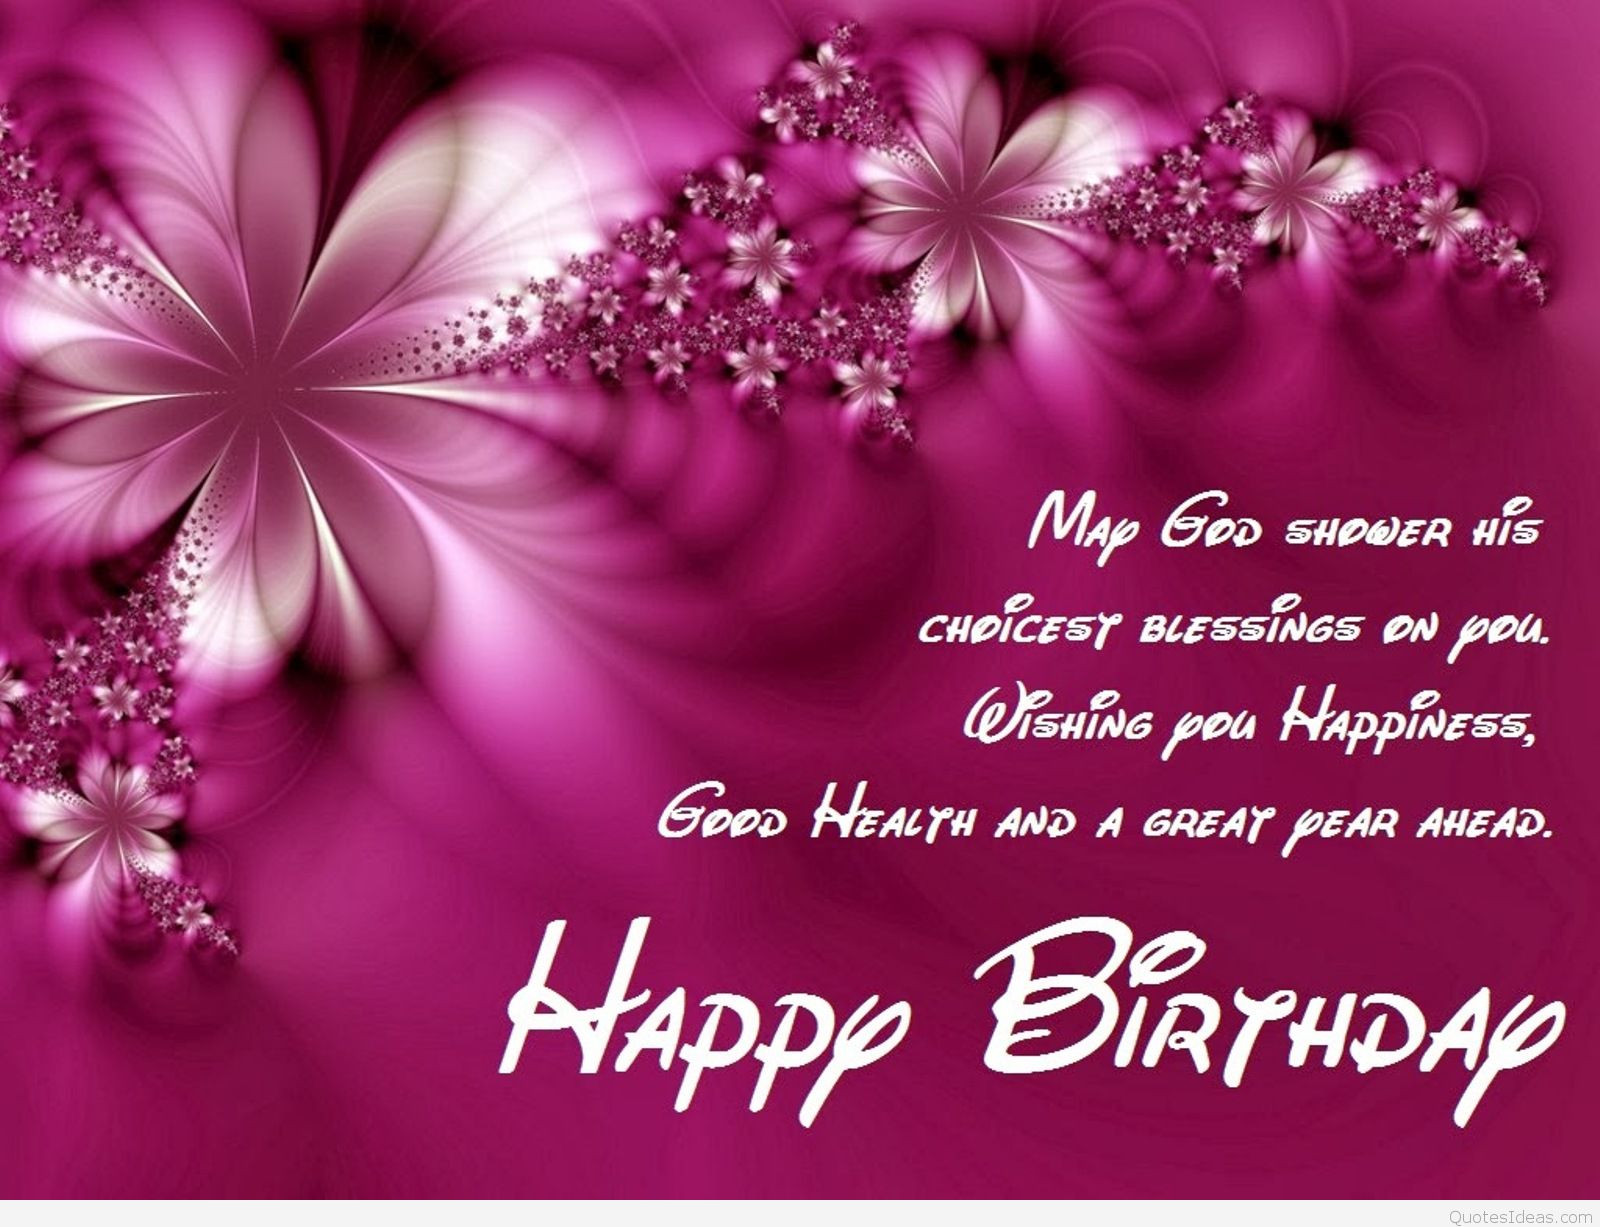 Best ideas about Birthday Wishes For Sister Images . Save or Pin Dear Sister Happy Birthday quote wallpaper Now.